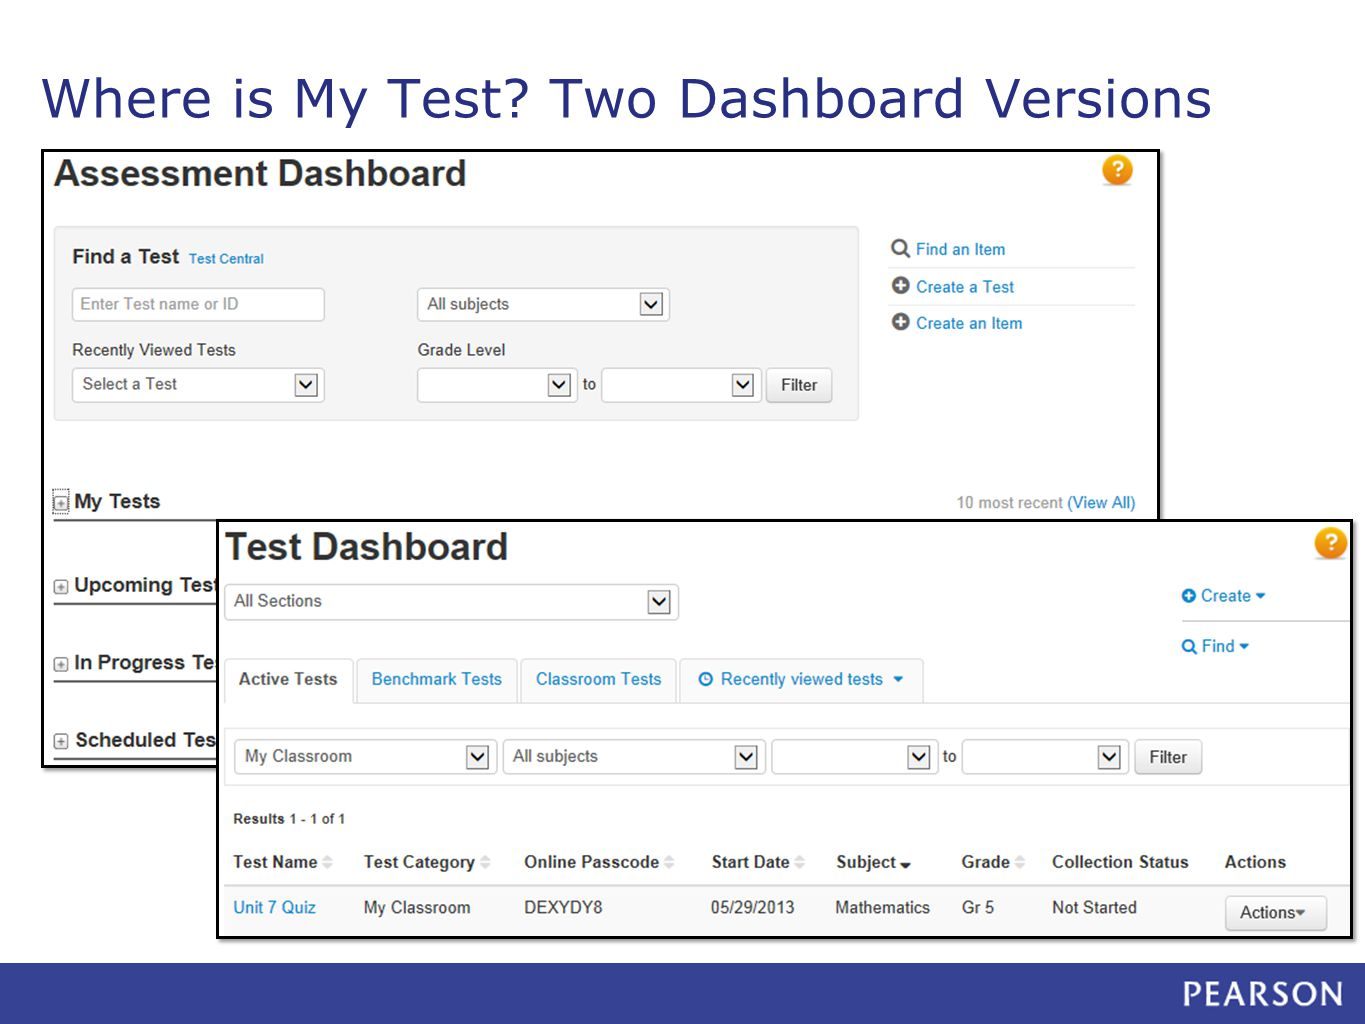 Where is My Test? Two Dashboard Versions